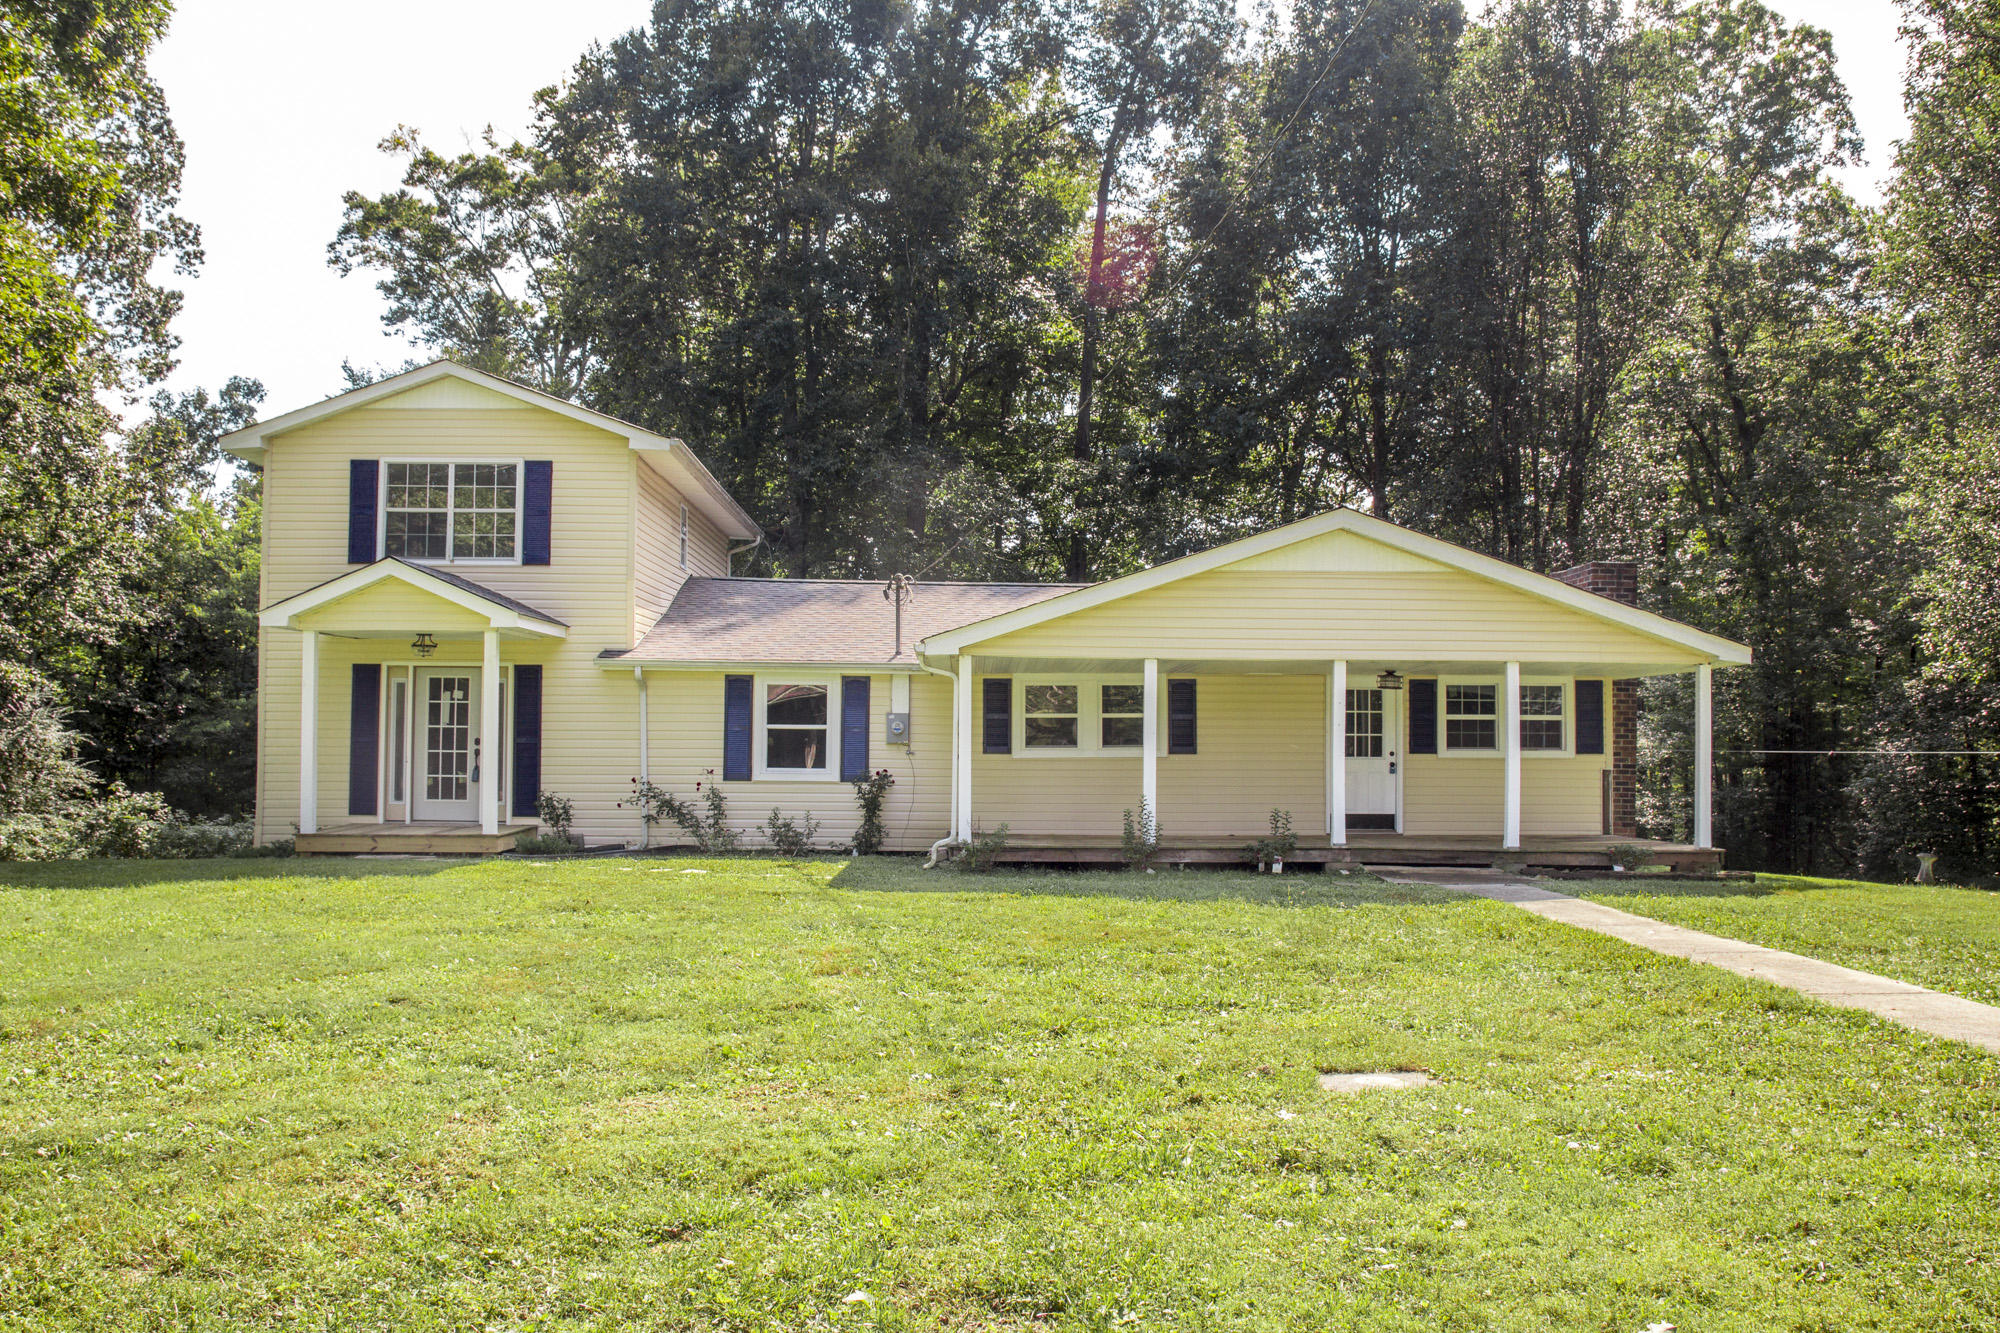 235 County Road 112, Athens, Tennessee, United States 37303, 4 Bedrooms Bedrooms, ,2 BathroomsBathrooms,Single Family,For Sale,235 County Road 112,1119545